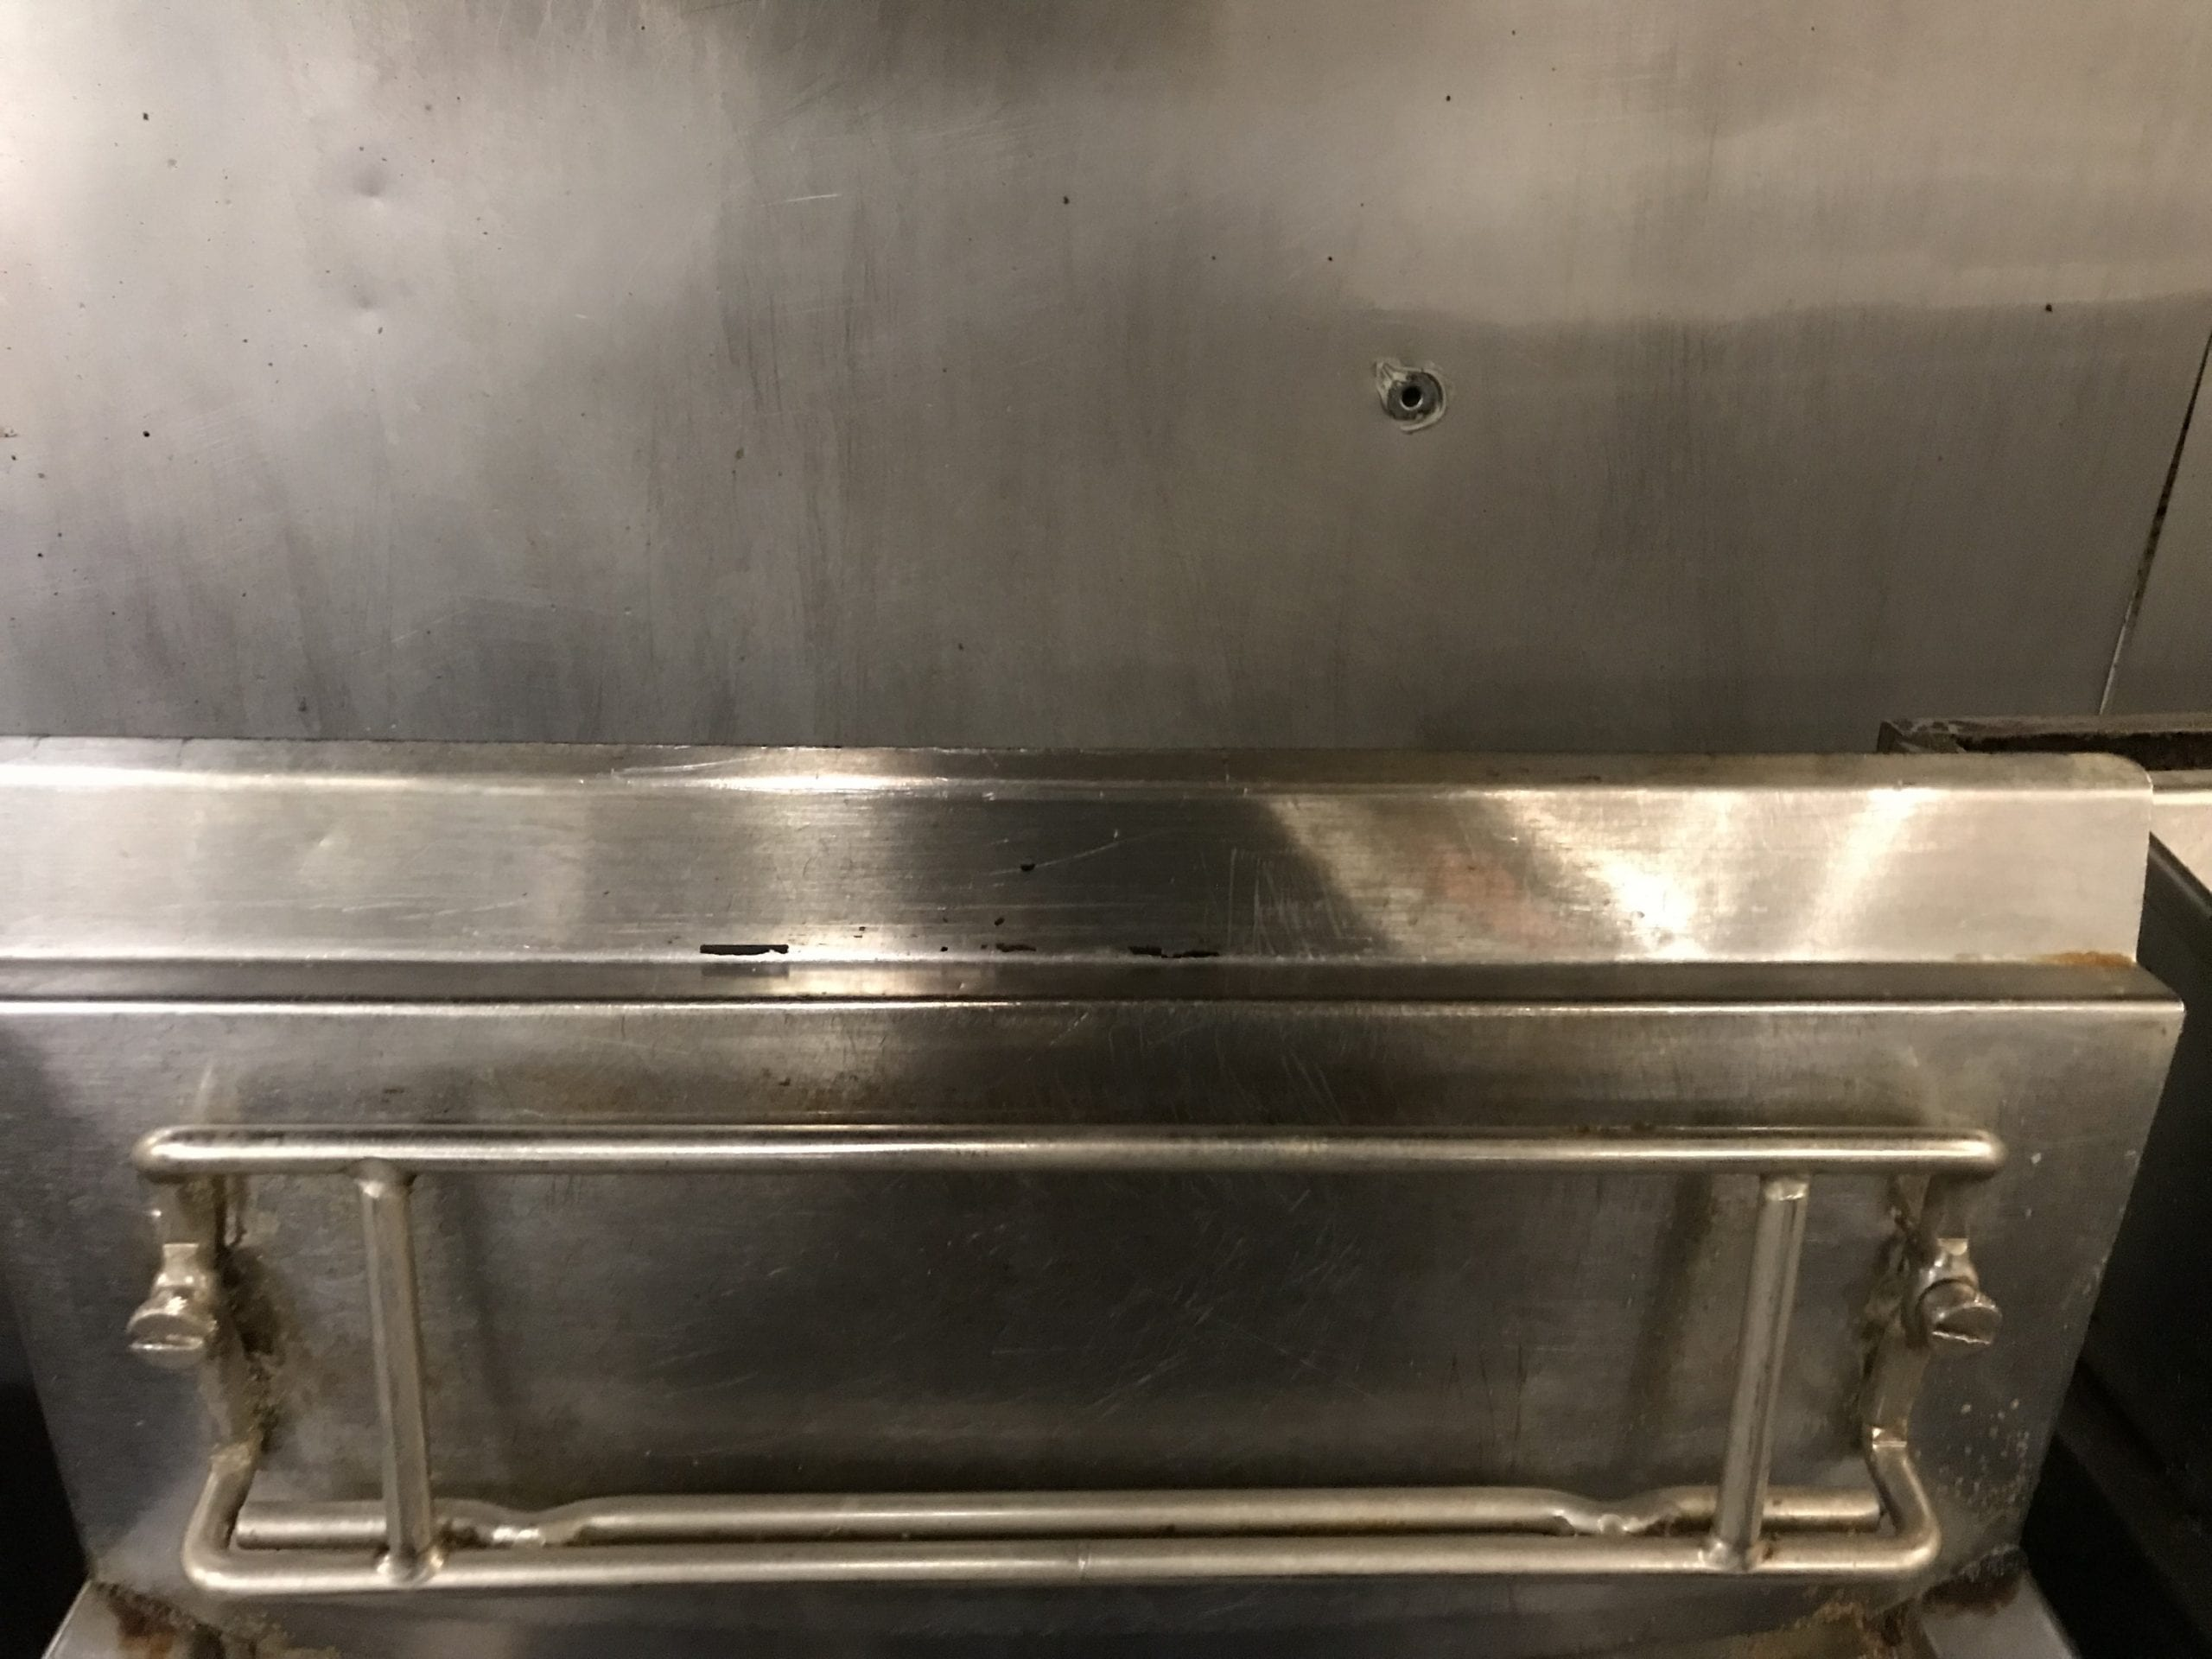 Fryer cleaned with vapor steam